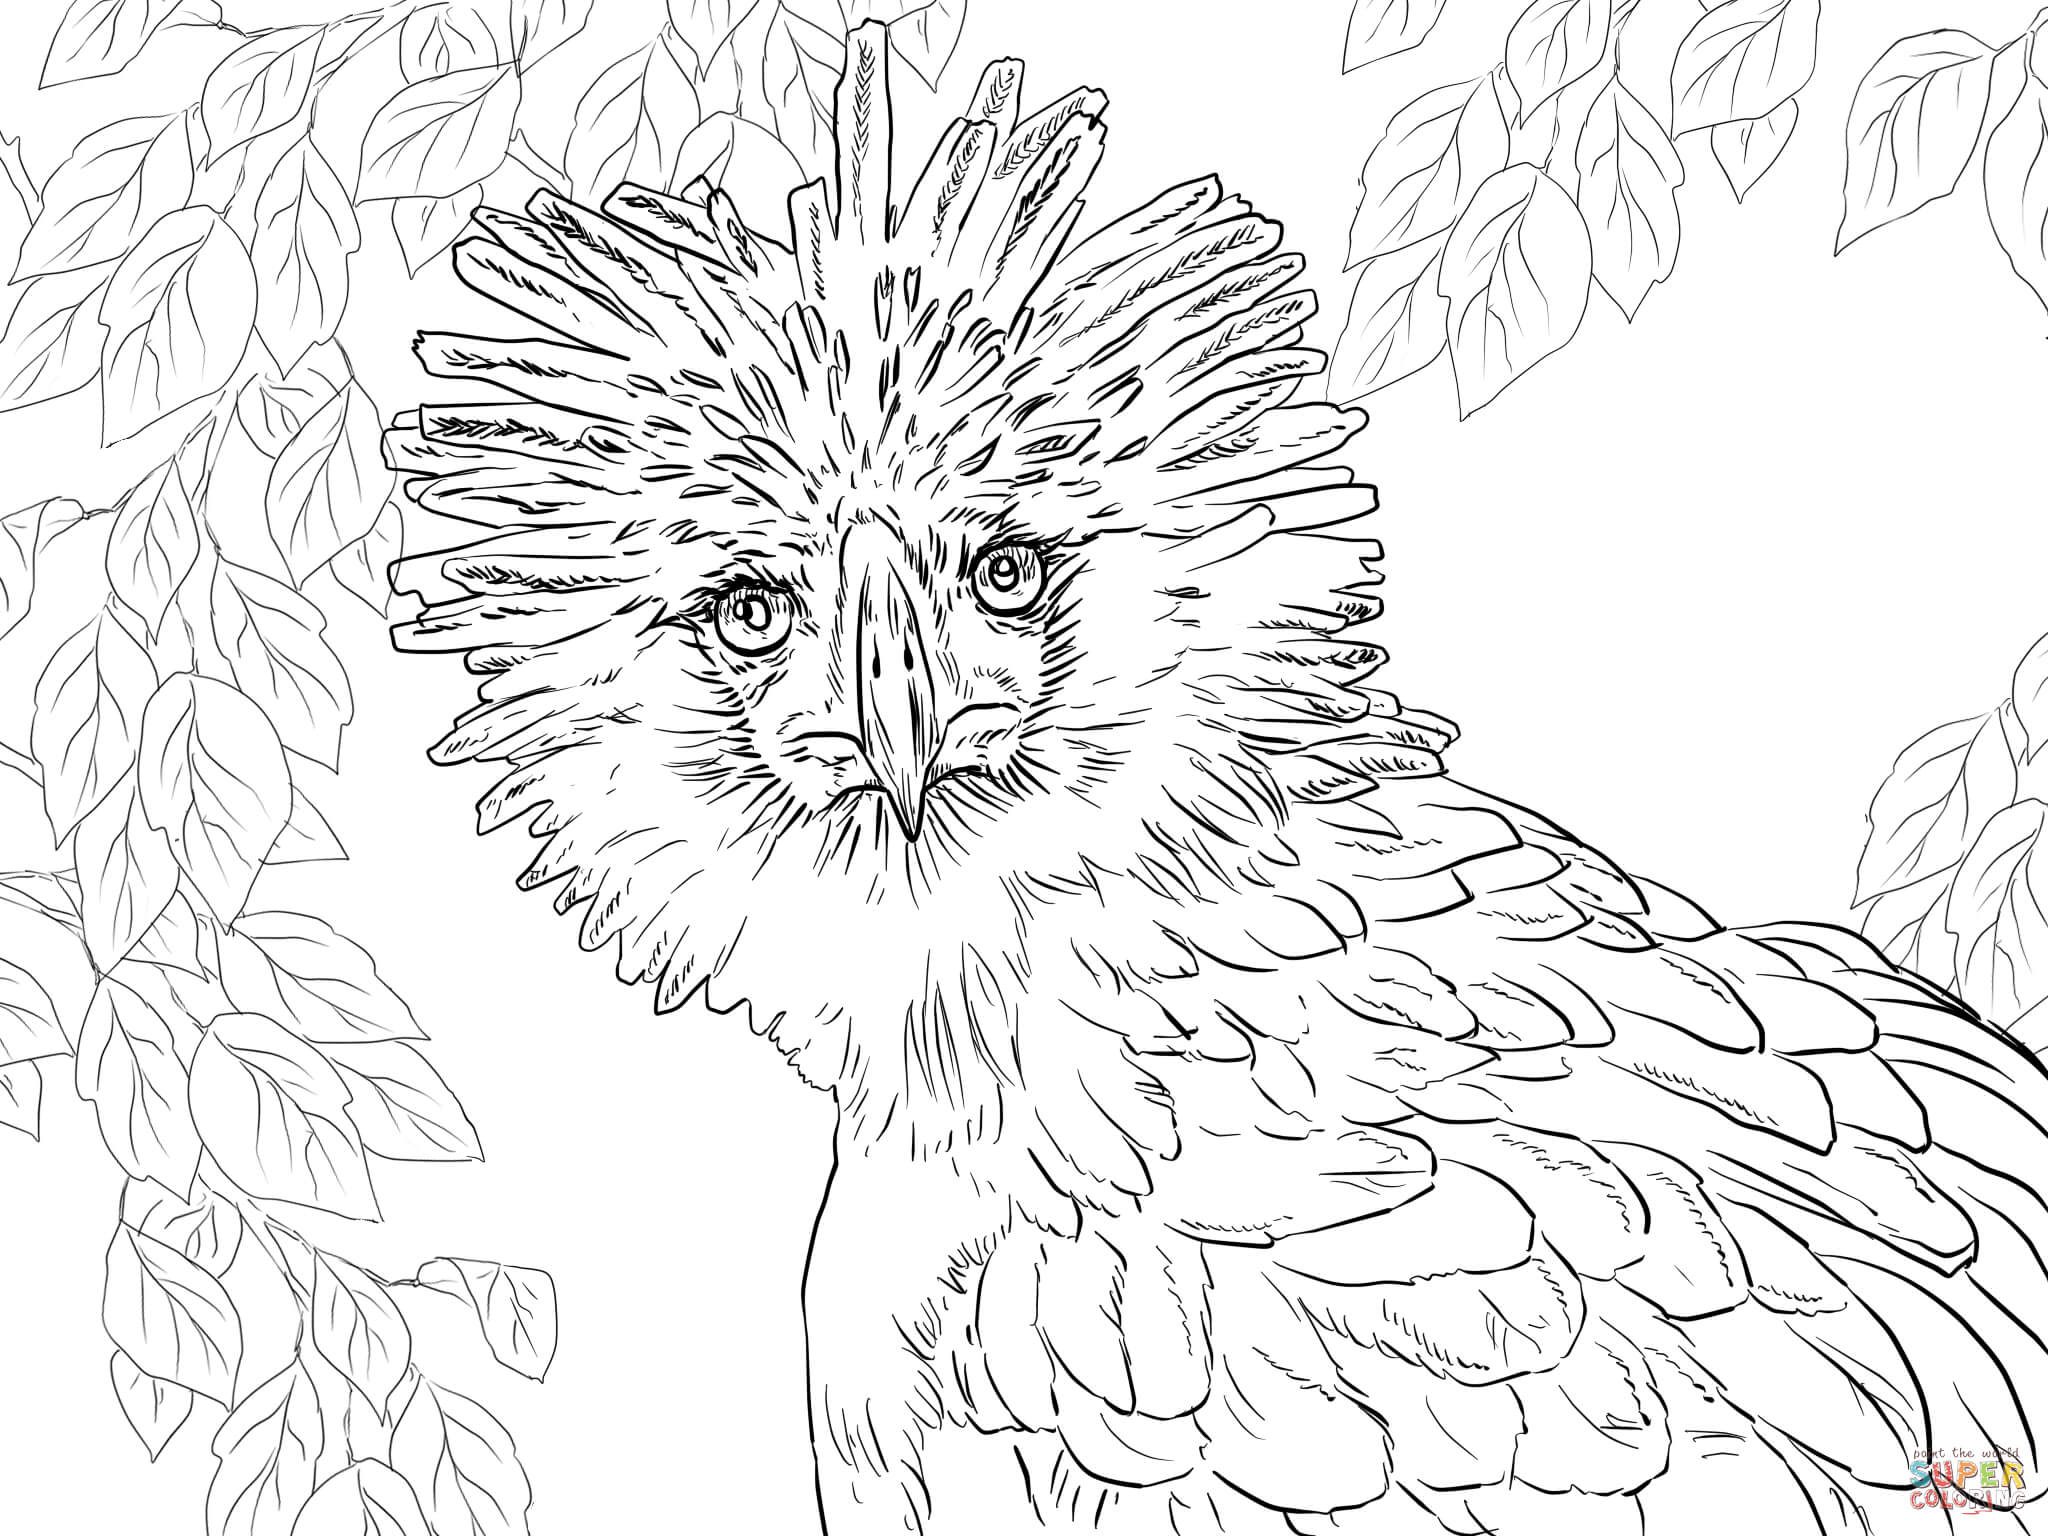 Endangered Species Drawing at GetDrawings.com | Free for personal ...